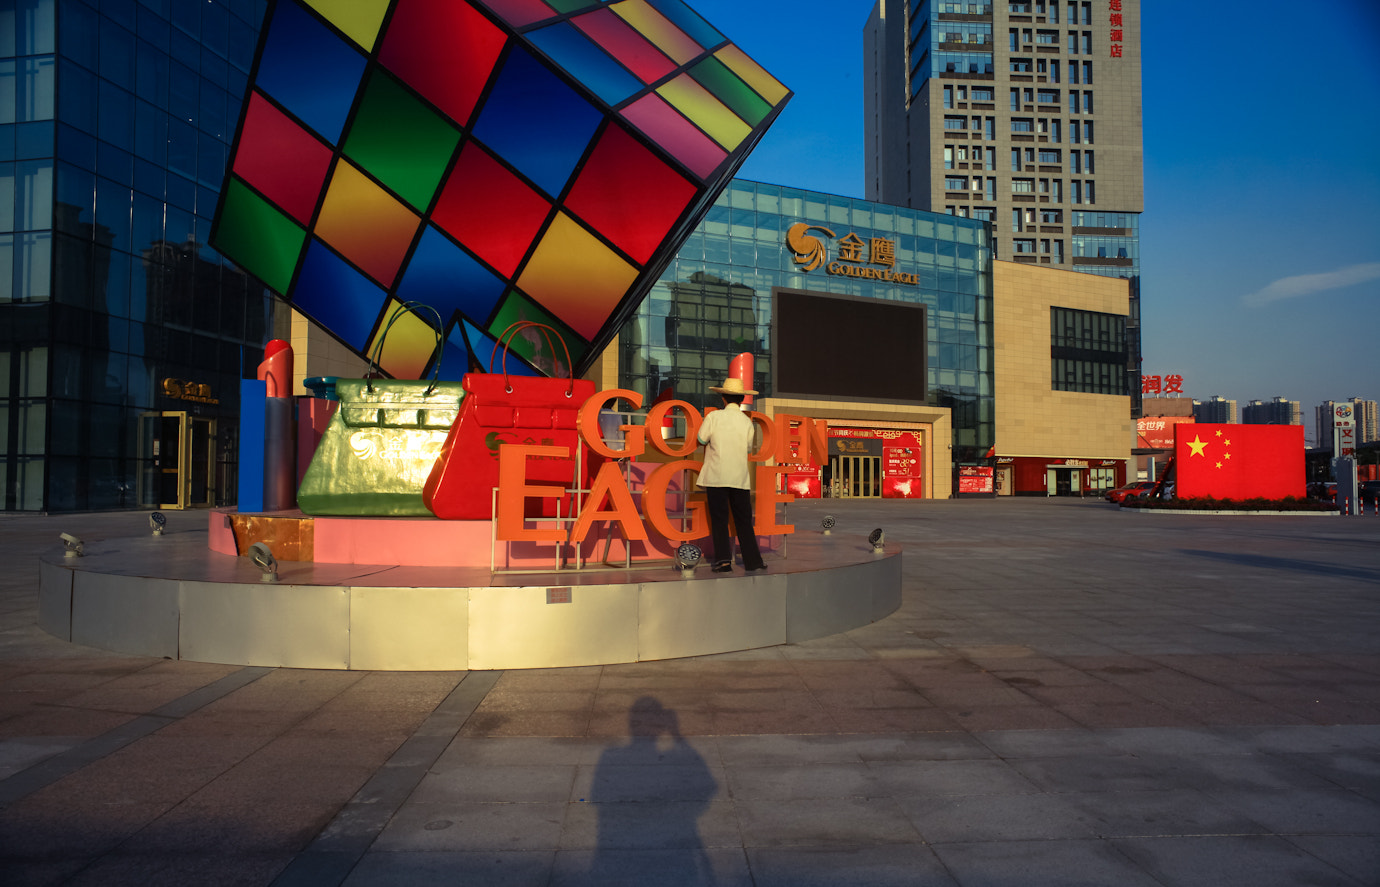 Photograph color cube and a mall by jacky mao on 500px